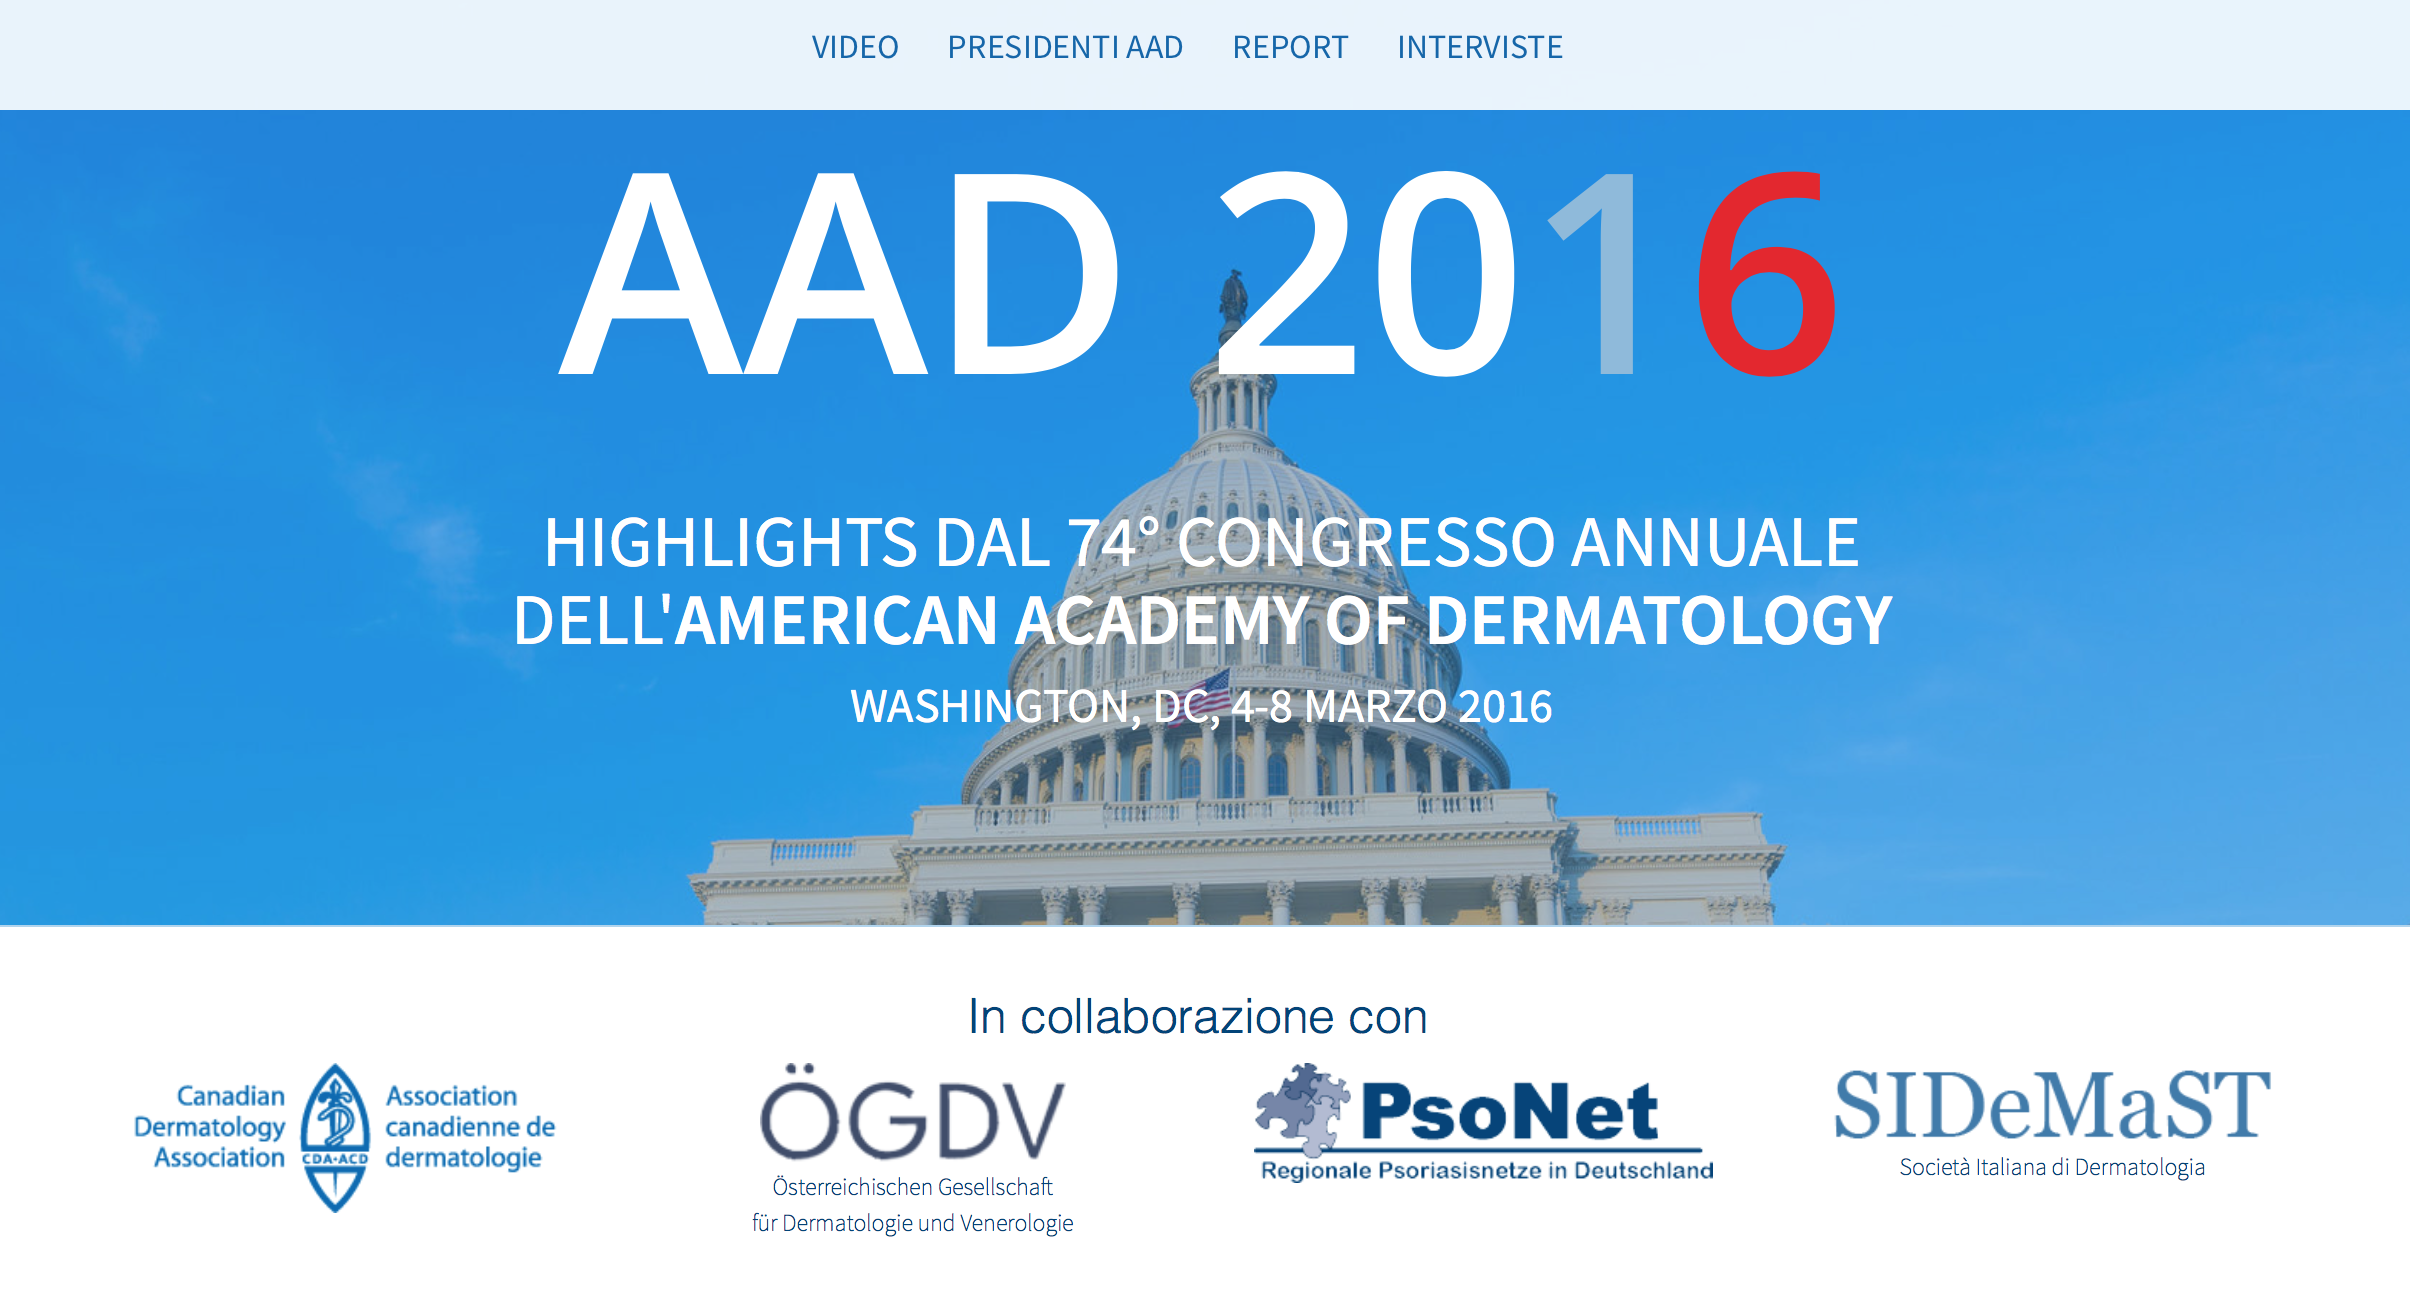 Highlights dal 74° Congresso Annuale dell'American Academy of Dermatology